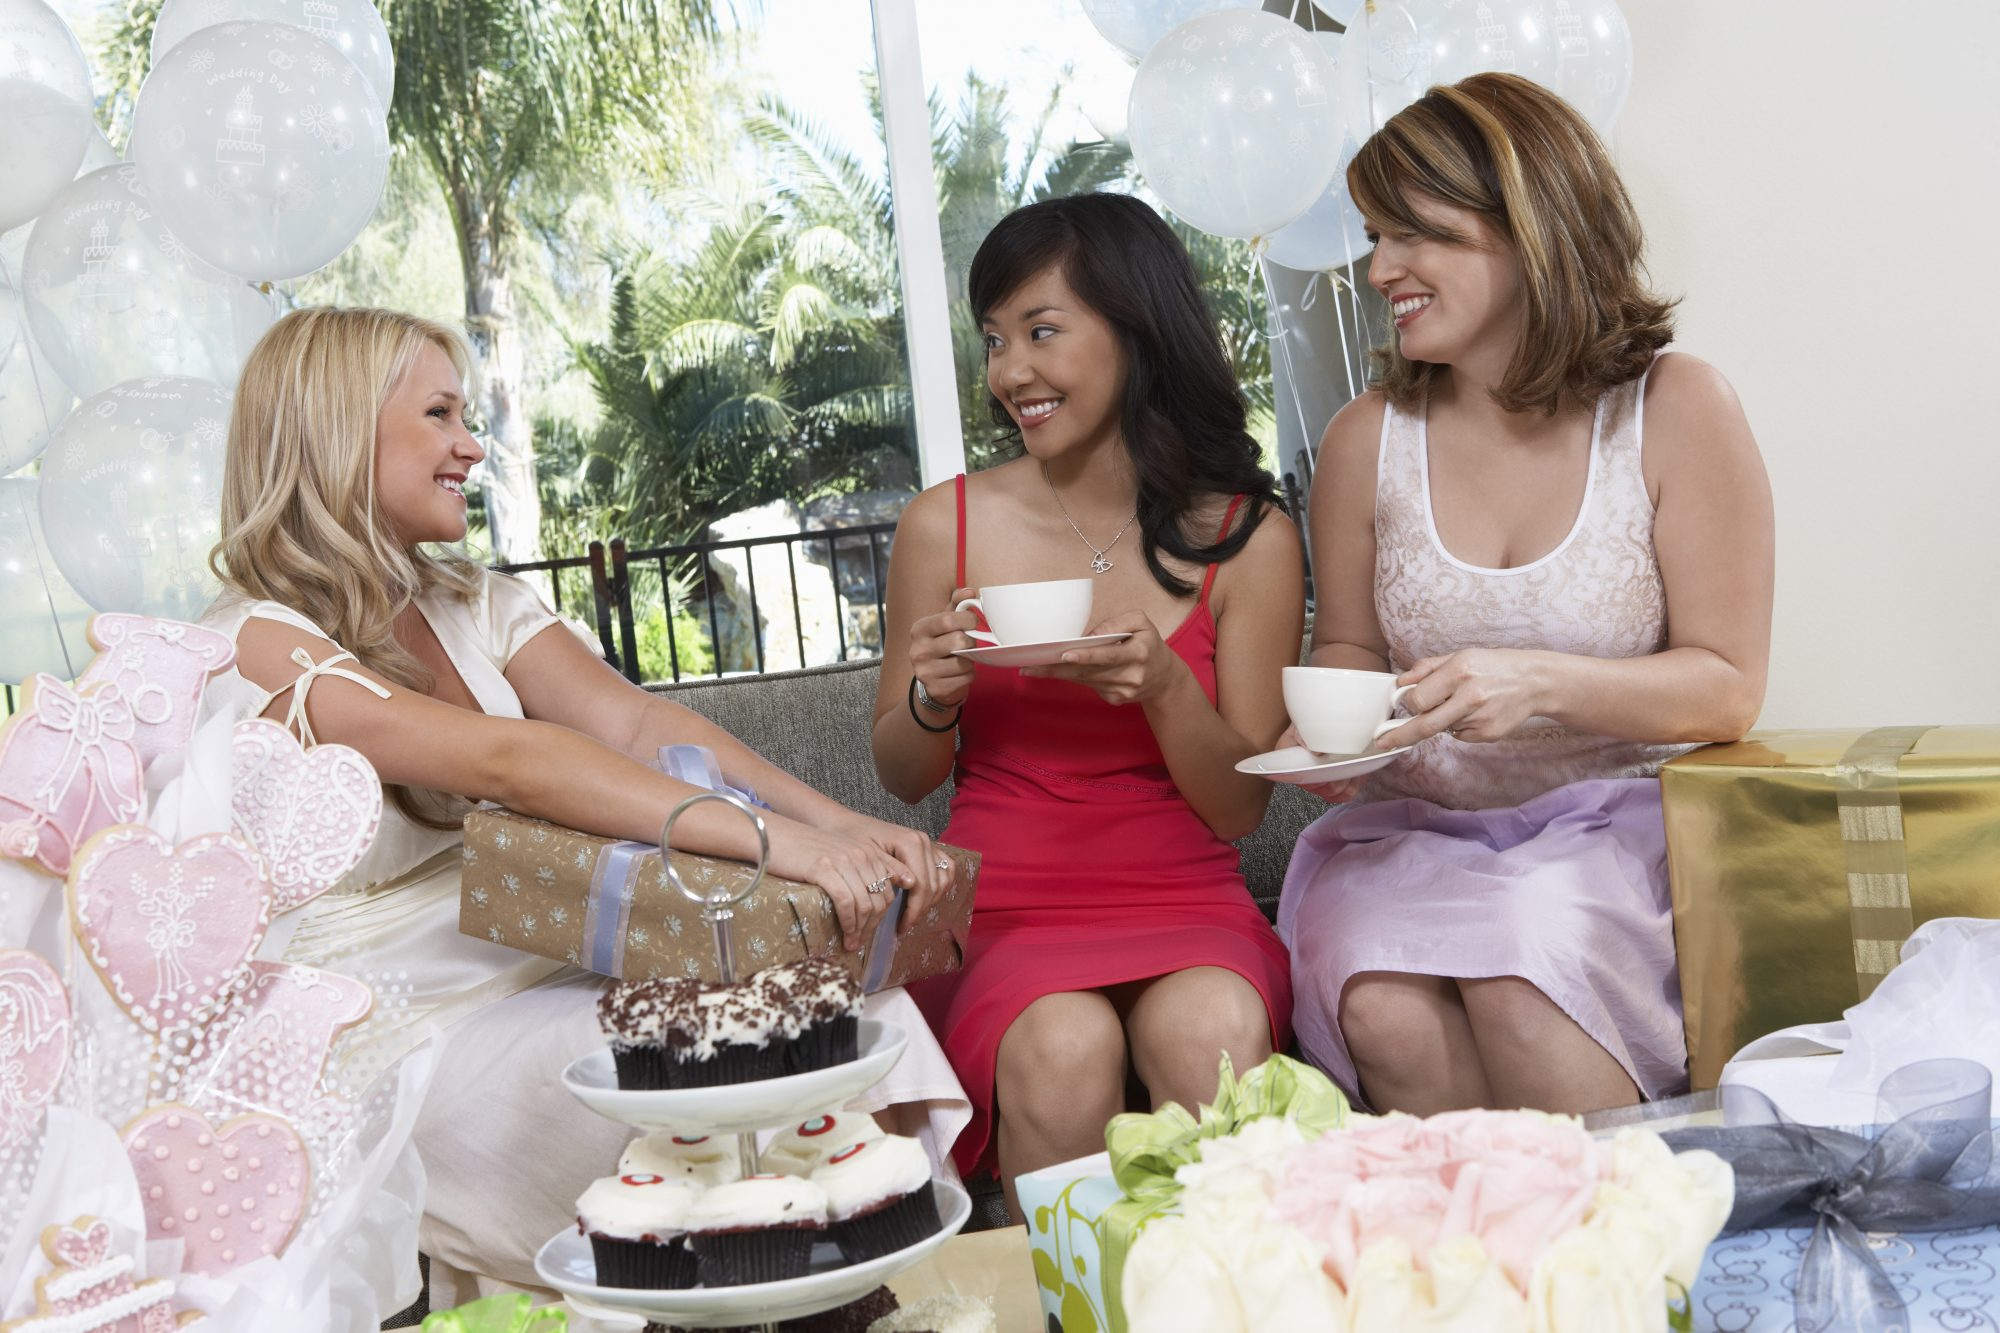 Is It Proper For Mom to Host the Bridal Shower? - Southern Living